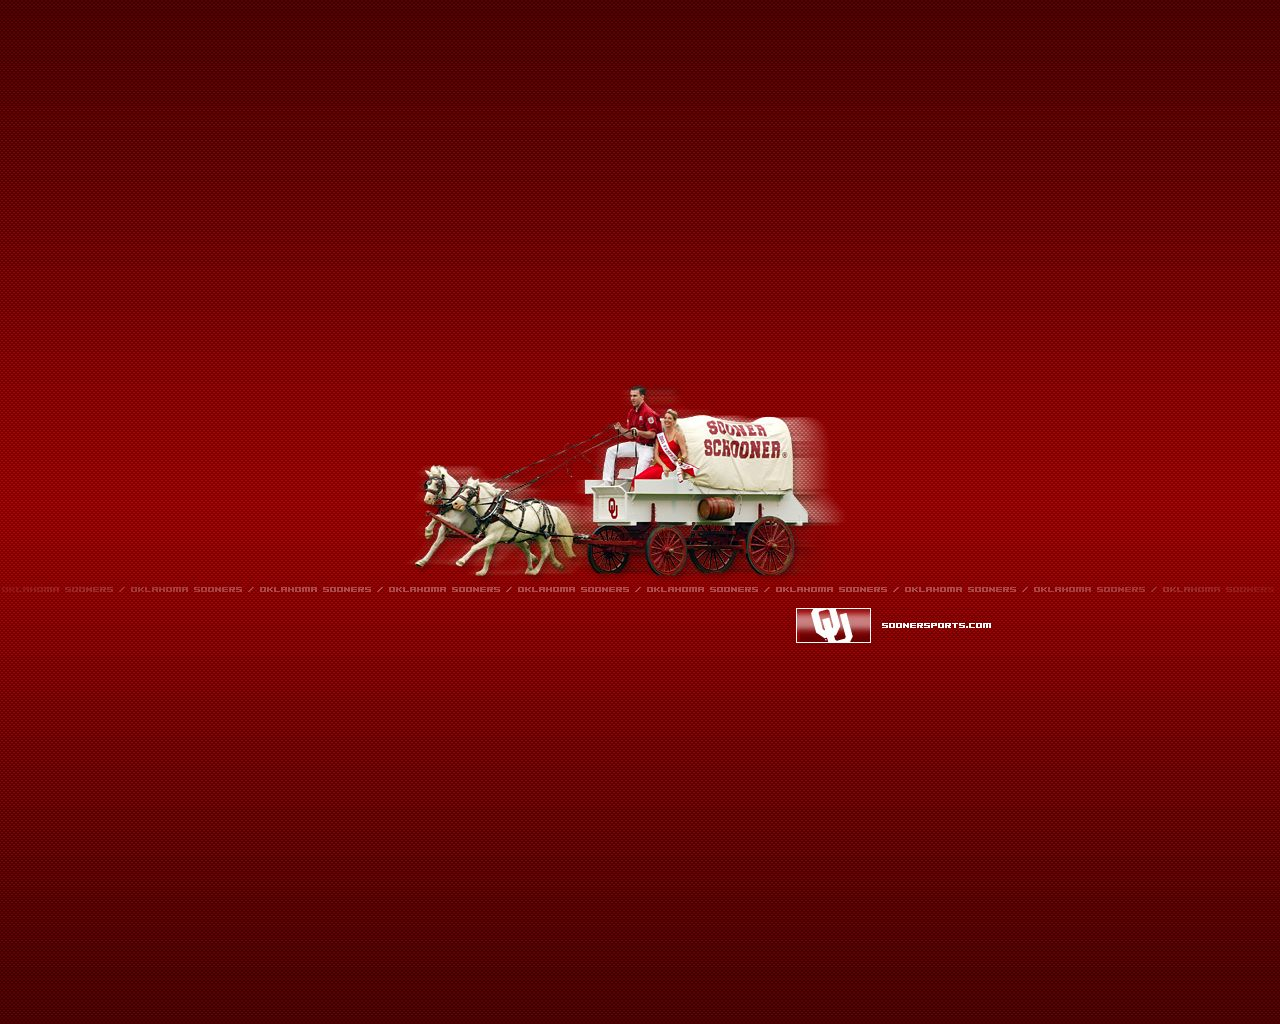 Oklahoma Sooners Wallpapers Browser Themes More Oklahoma Sooners Sooners Oklahoma Football